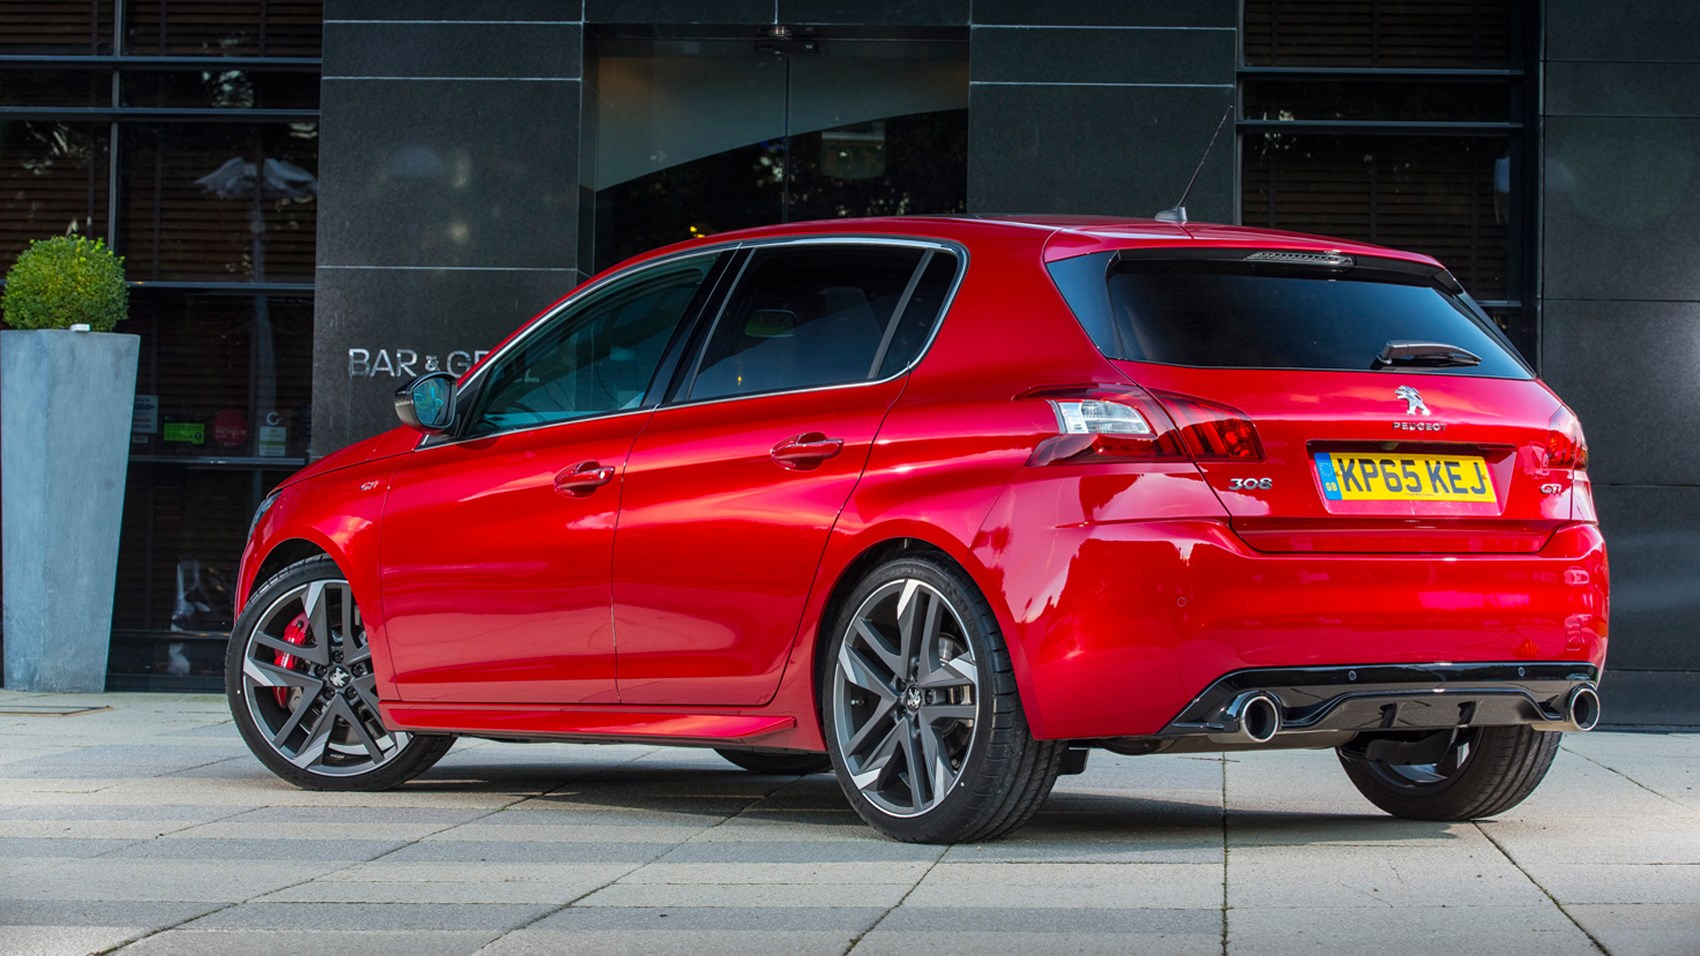 2017 Peugeot 308 Gti Review Specs And Price >> Peugeot 308 Gti 2016 Review By Car Magazine